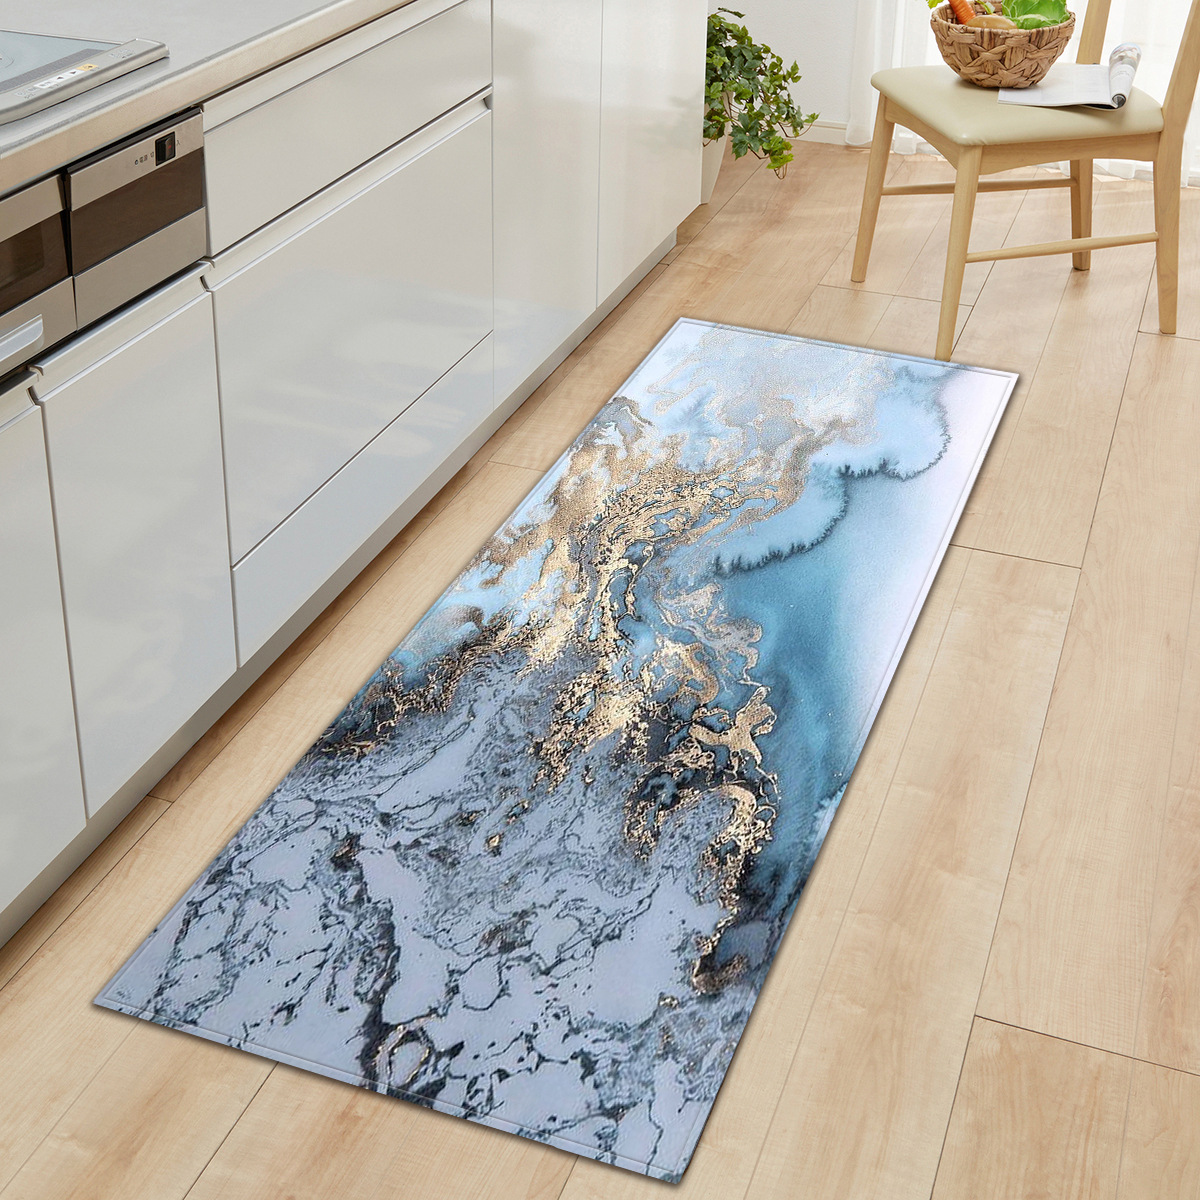 Floor Rug Mat Kitchen Bedroom Bath Room Non Slip Carpet Marble pattern style